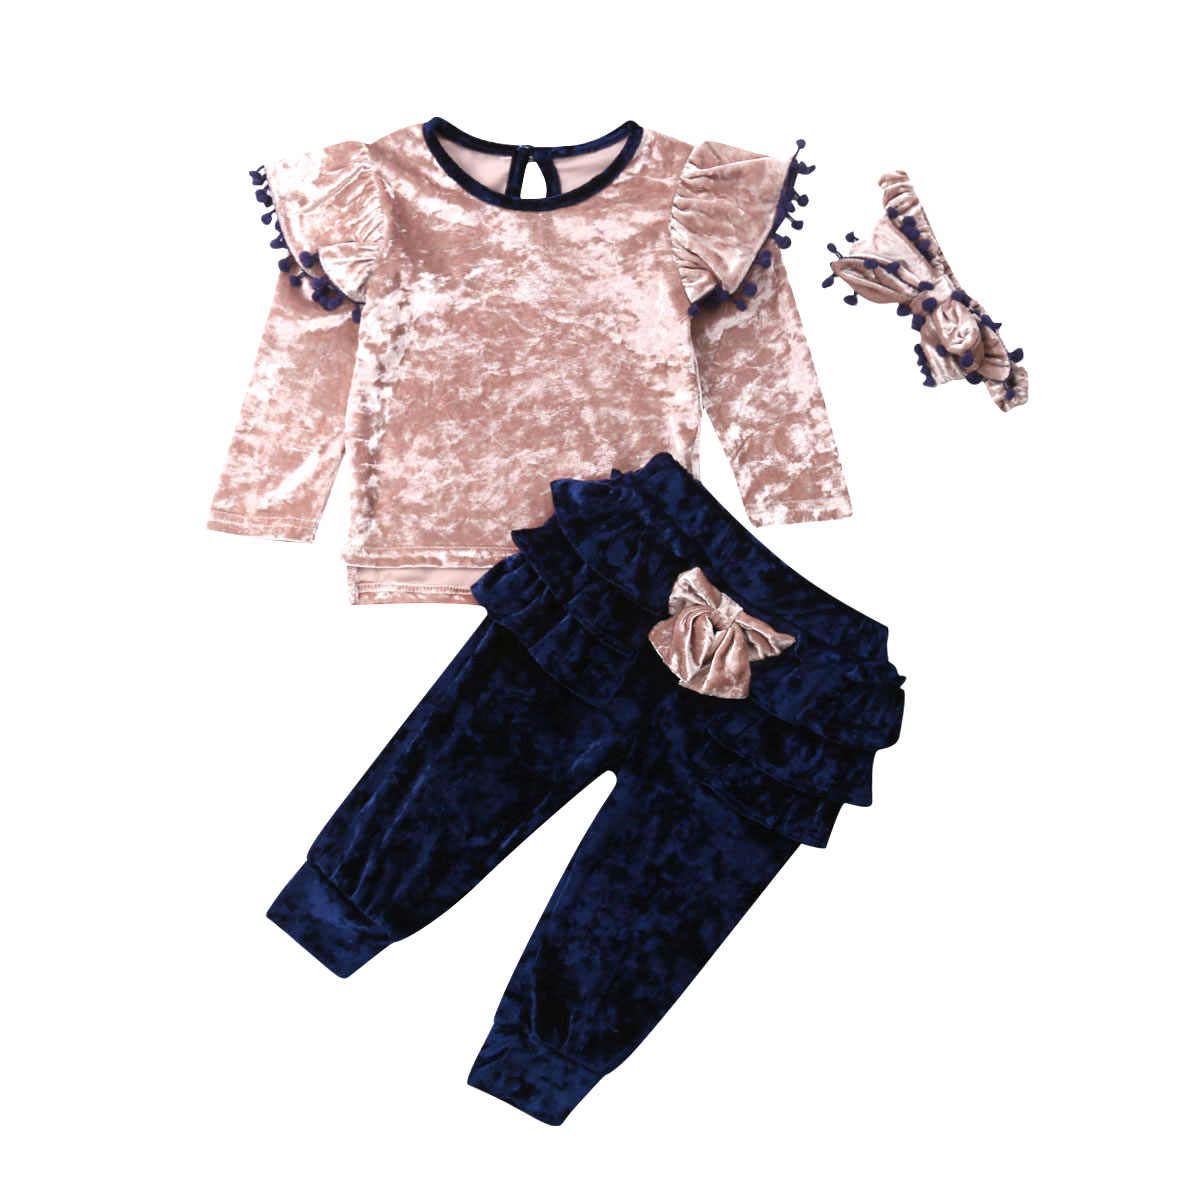 Toddler Kids Baby Girl Autumn Clothes Sets Velvet Ruffle Bow Tops Long Pants 3Pcs Outfit Set 1-6Y